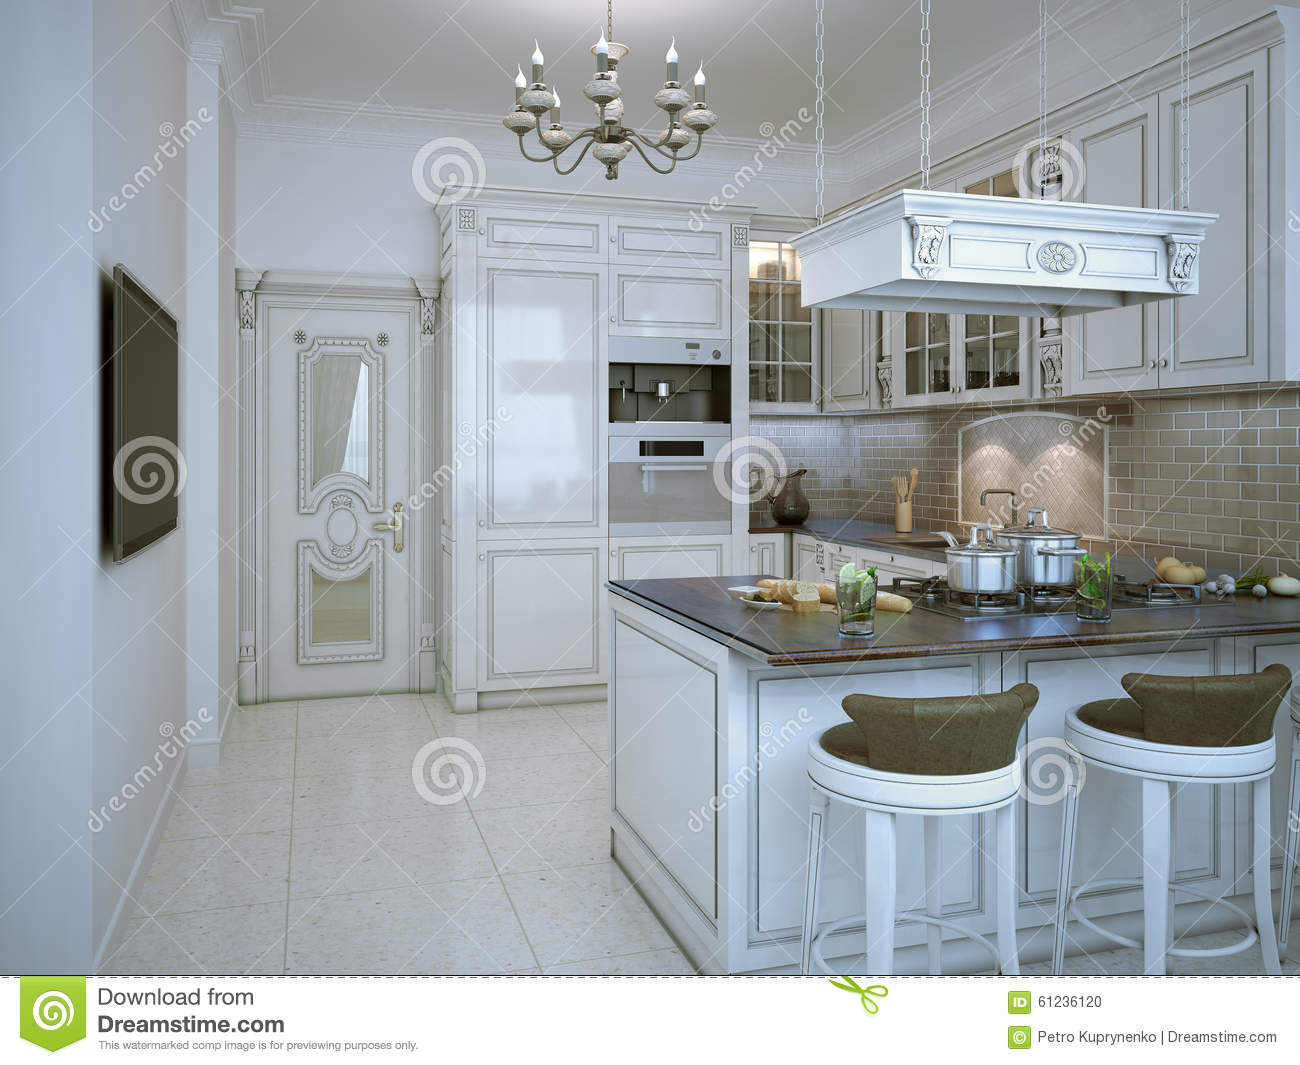 brick backsplash in kitchen white cupboards glossy art deco style stock illustration ...